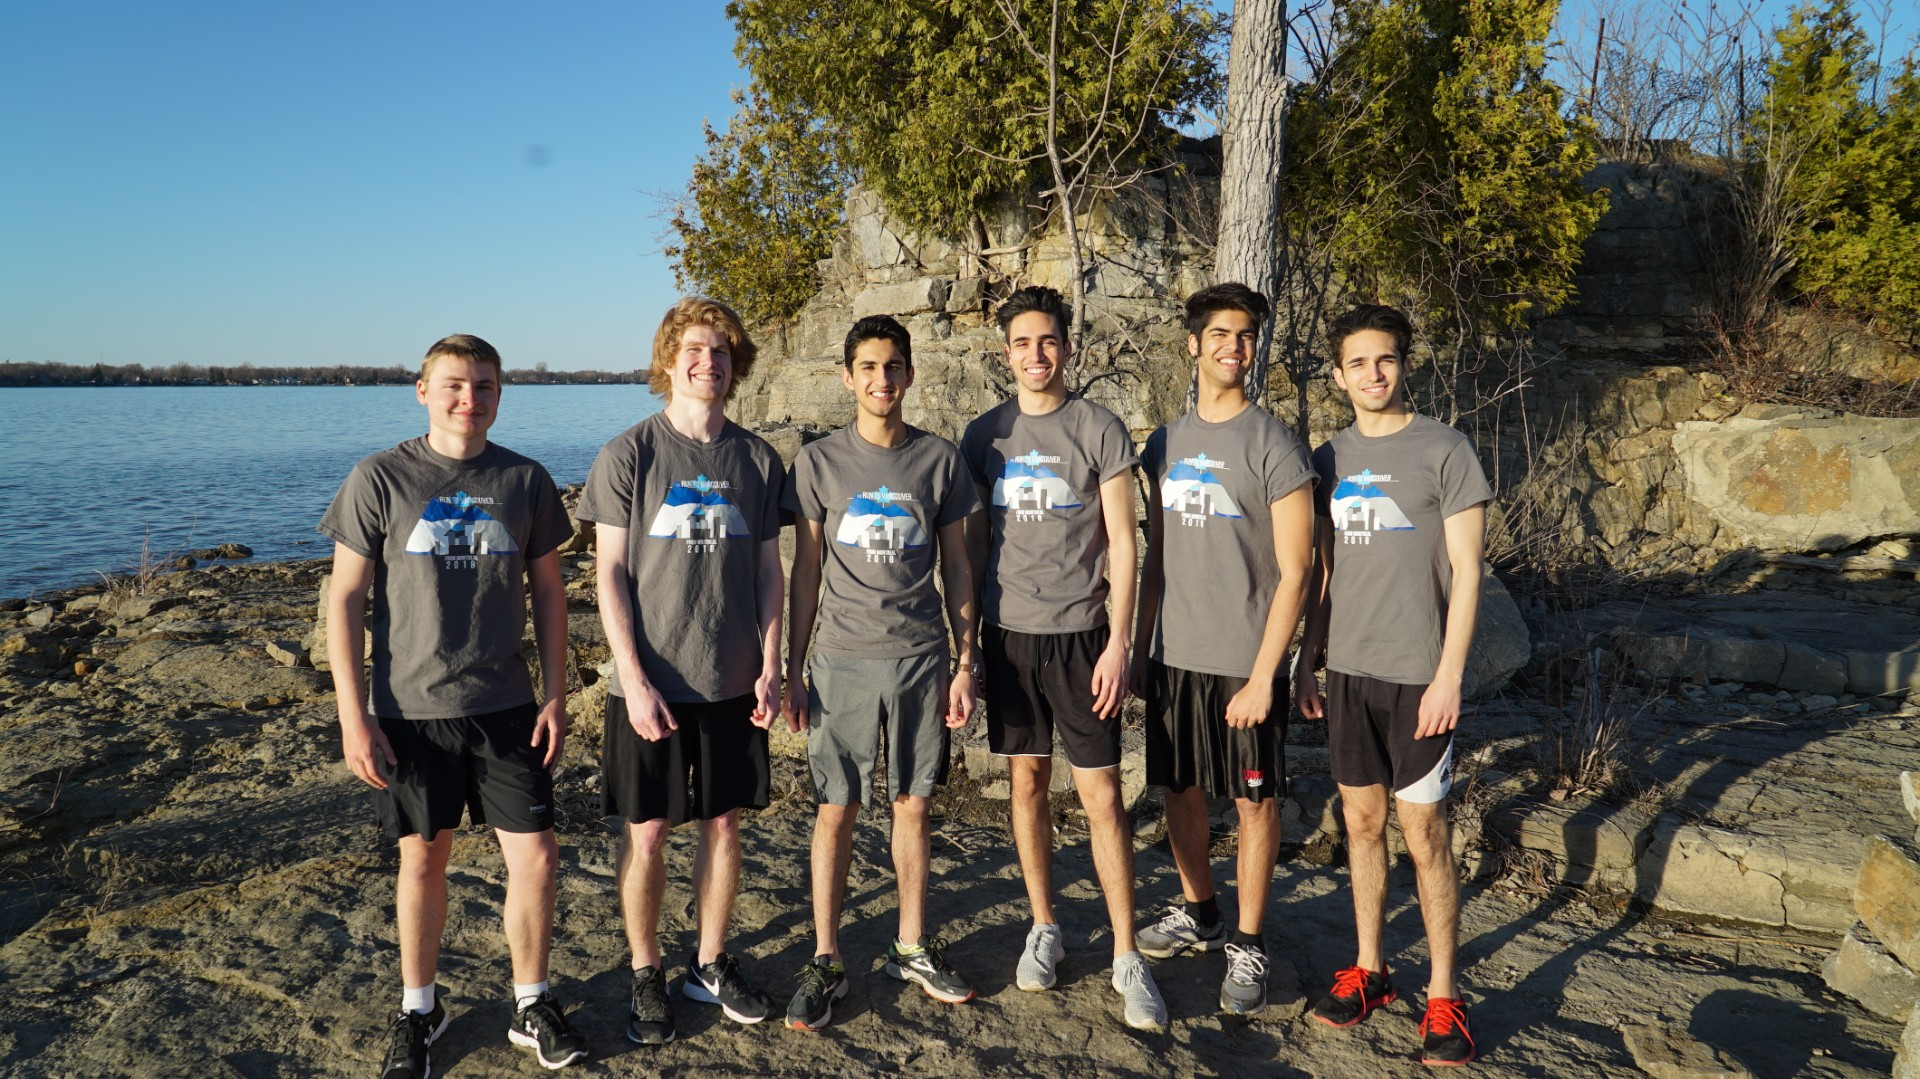 The Montreal Runners, left to right, Michael Davies, Keiston Herchel, Akshay Grover, Marc-André Blouin, Muhan Patel and Matthieu Blouin.